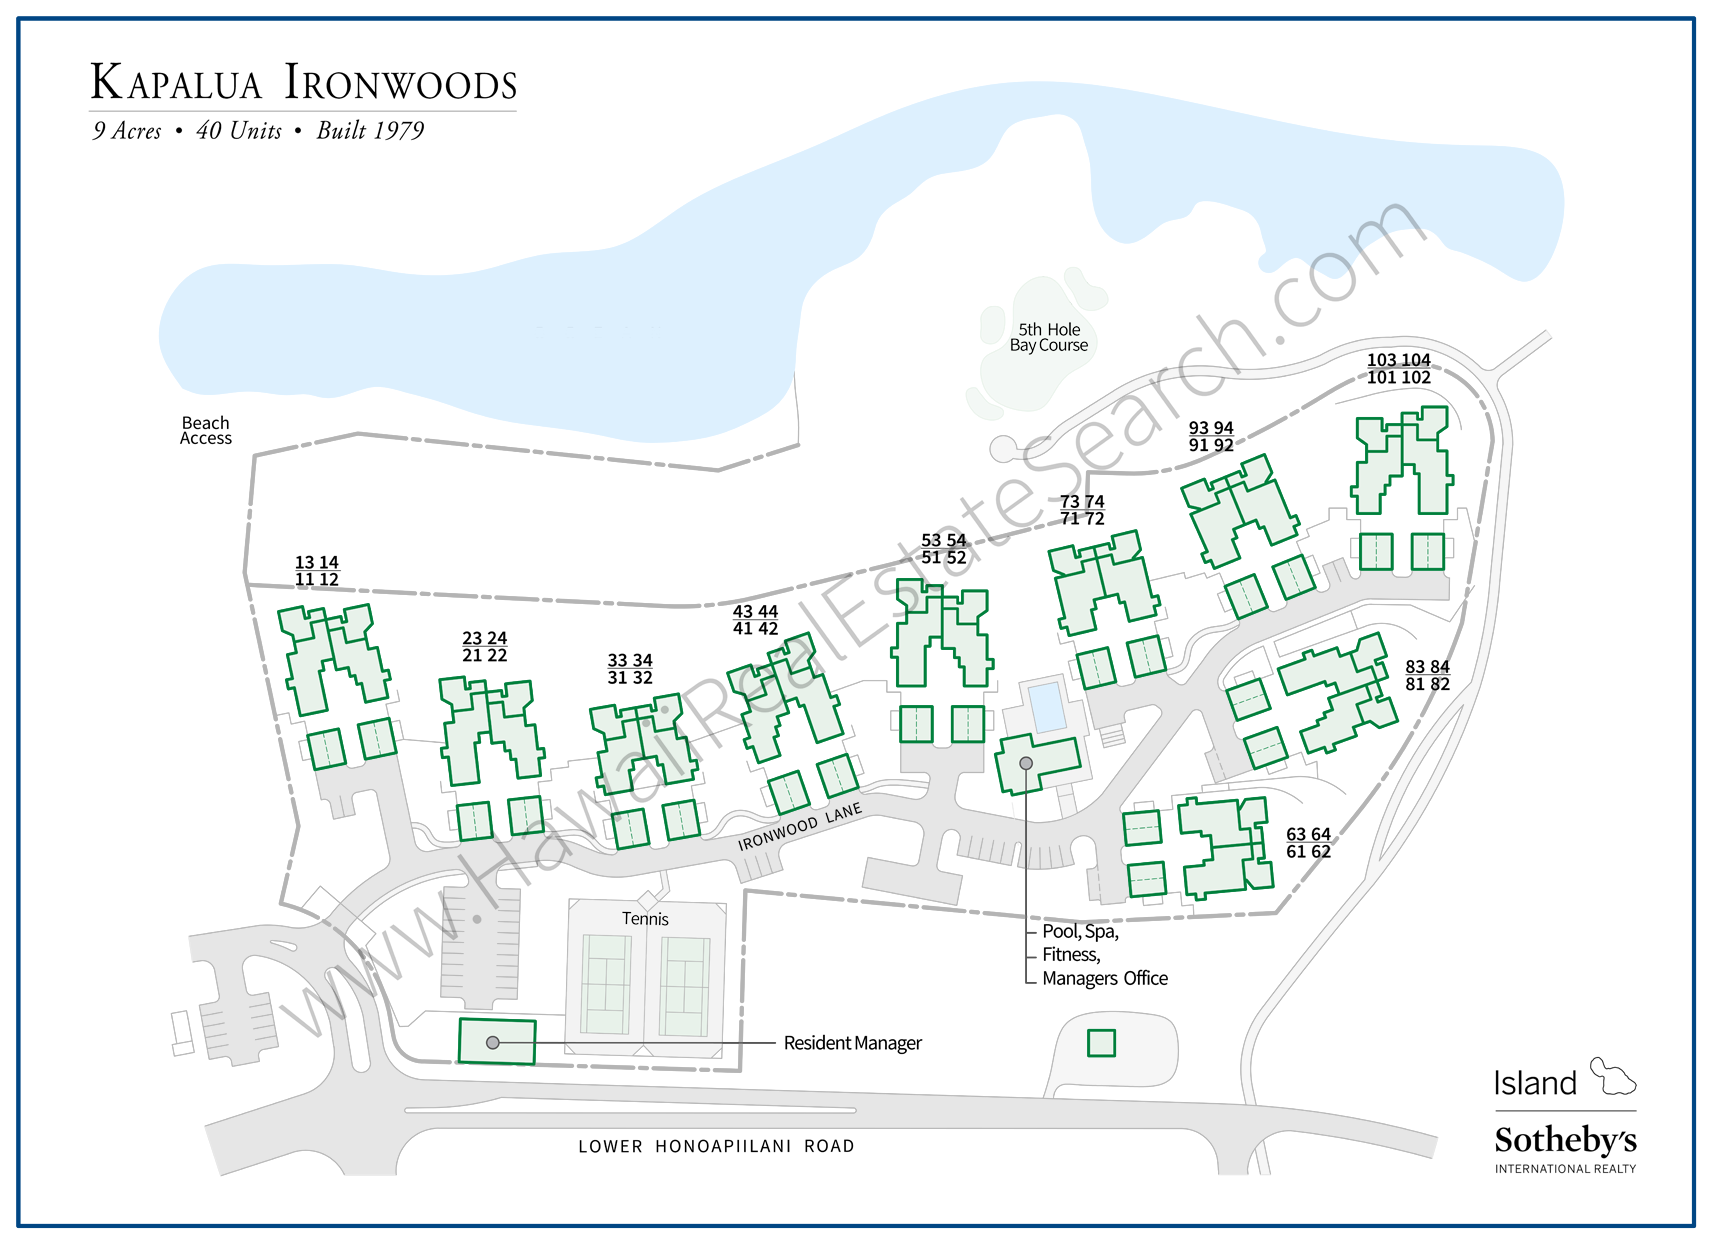 kapalua ironwoods map